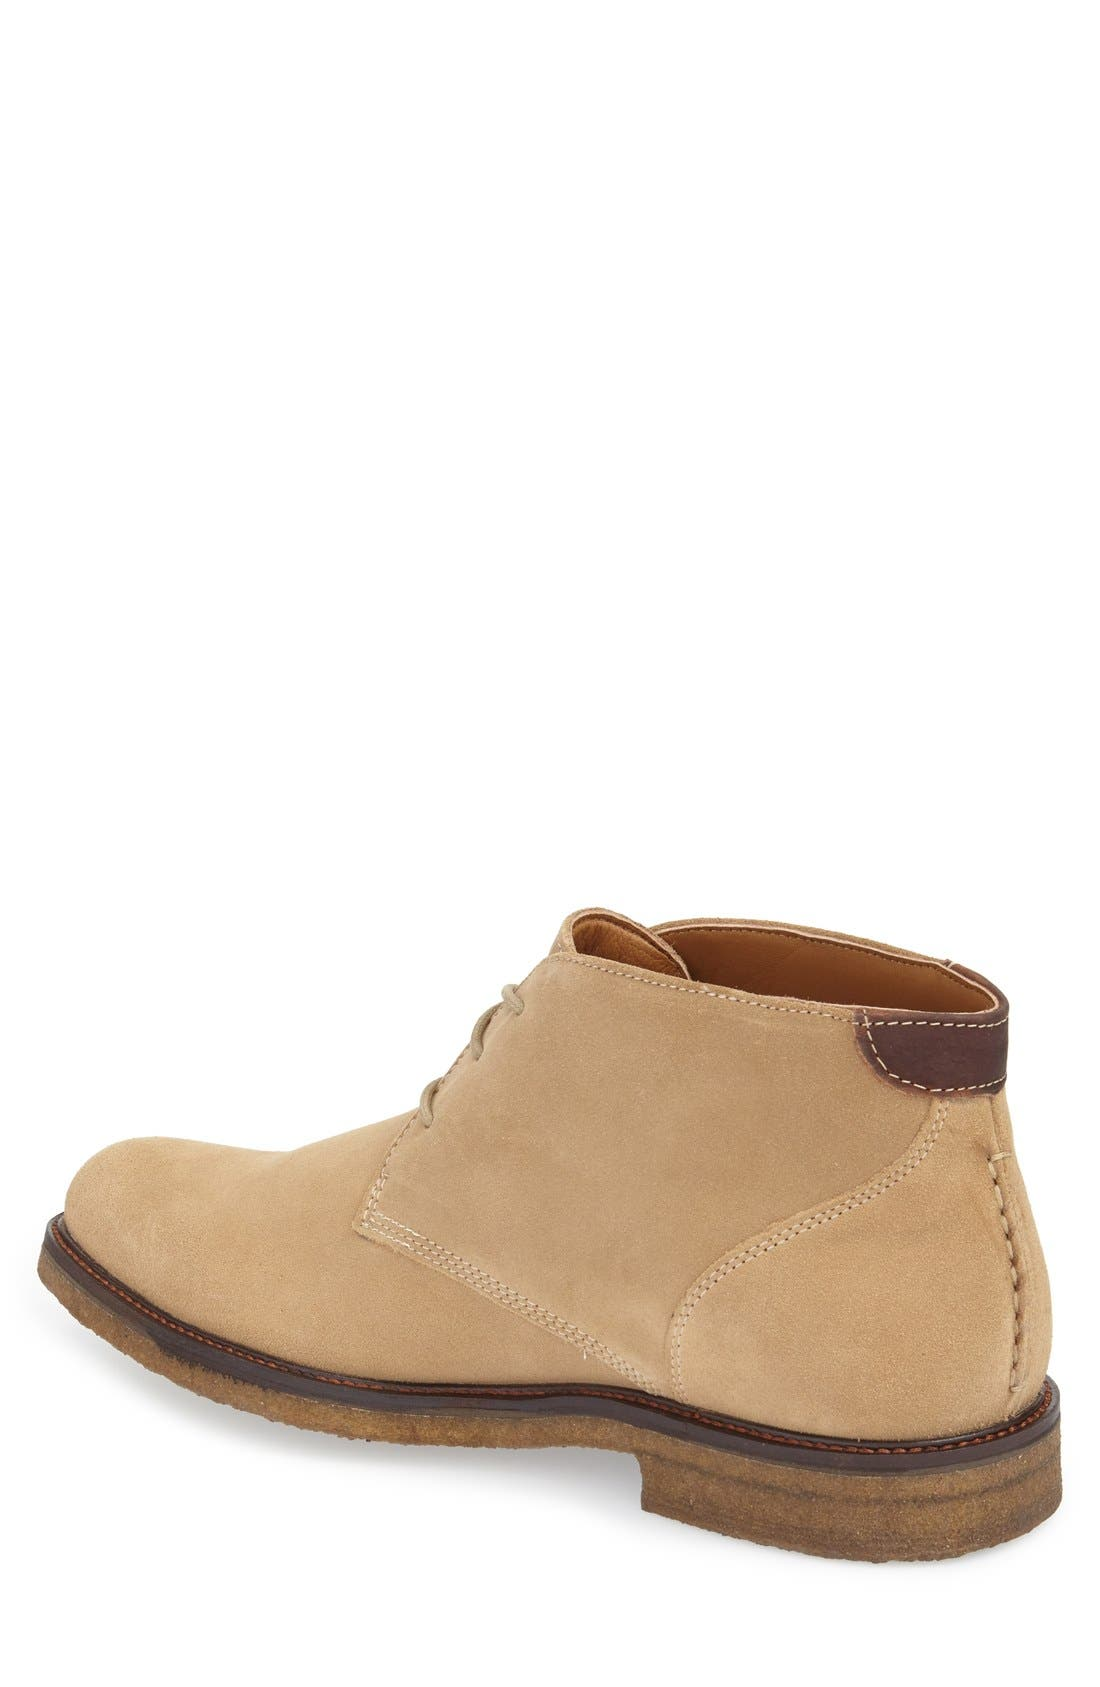 'Copeland' Suede Chukka Boot,                             Alternate thumbnail 14, color,